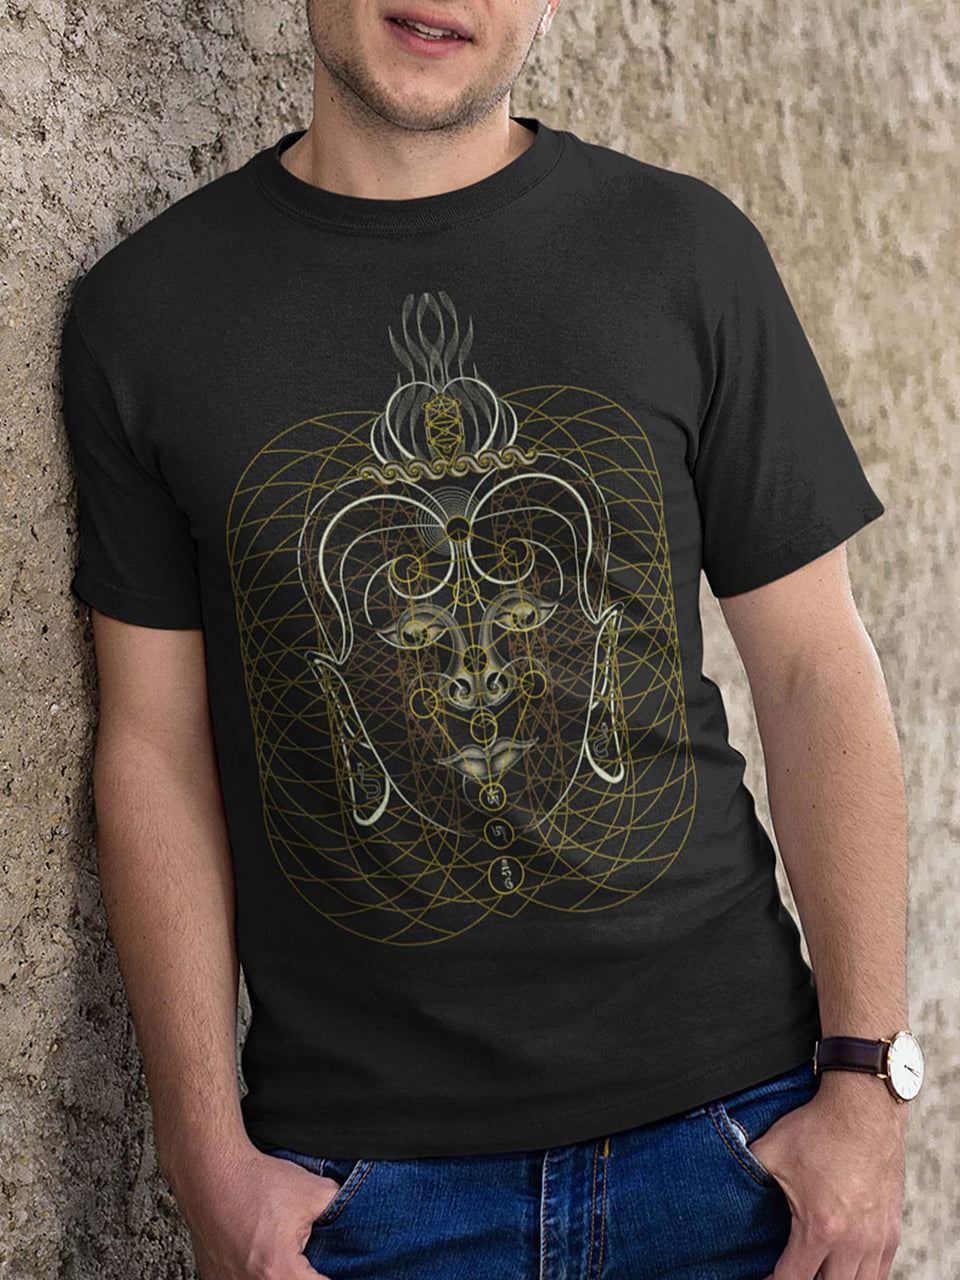 Buddha Vibes Hung Made To Order Men T-Shirt - Black